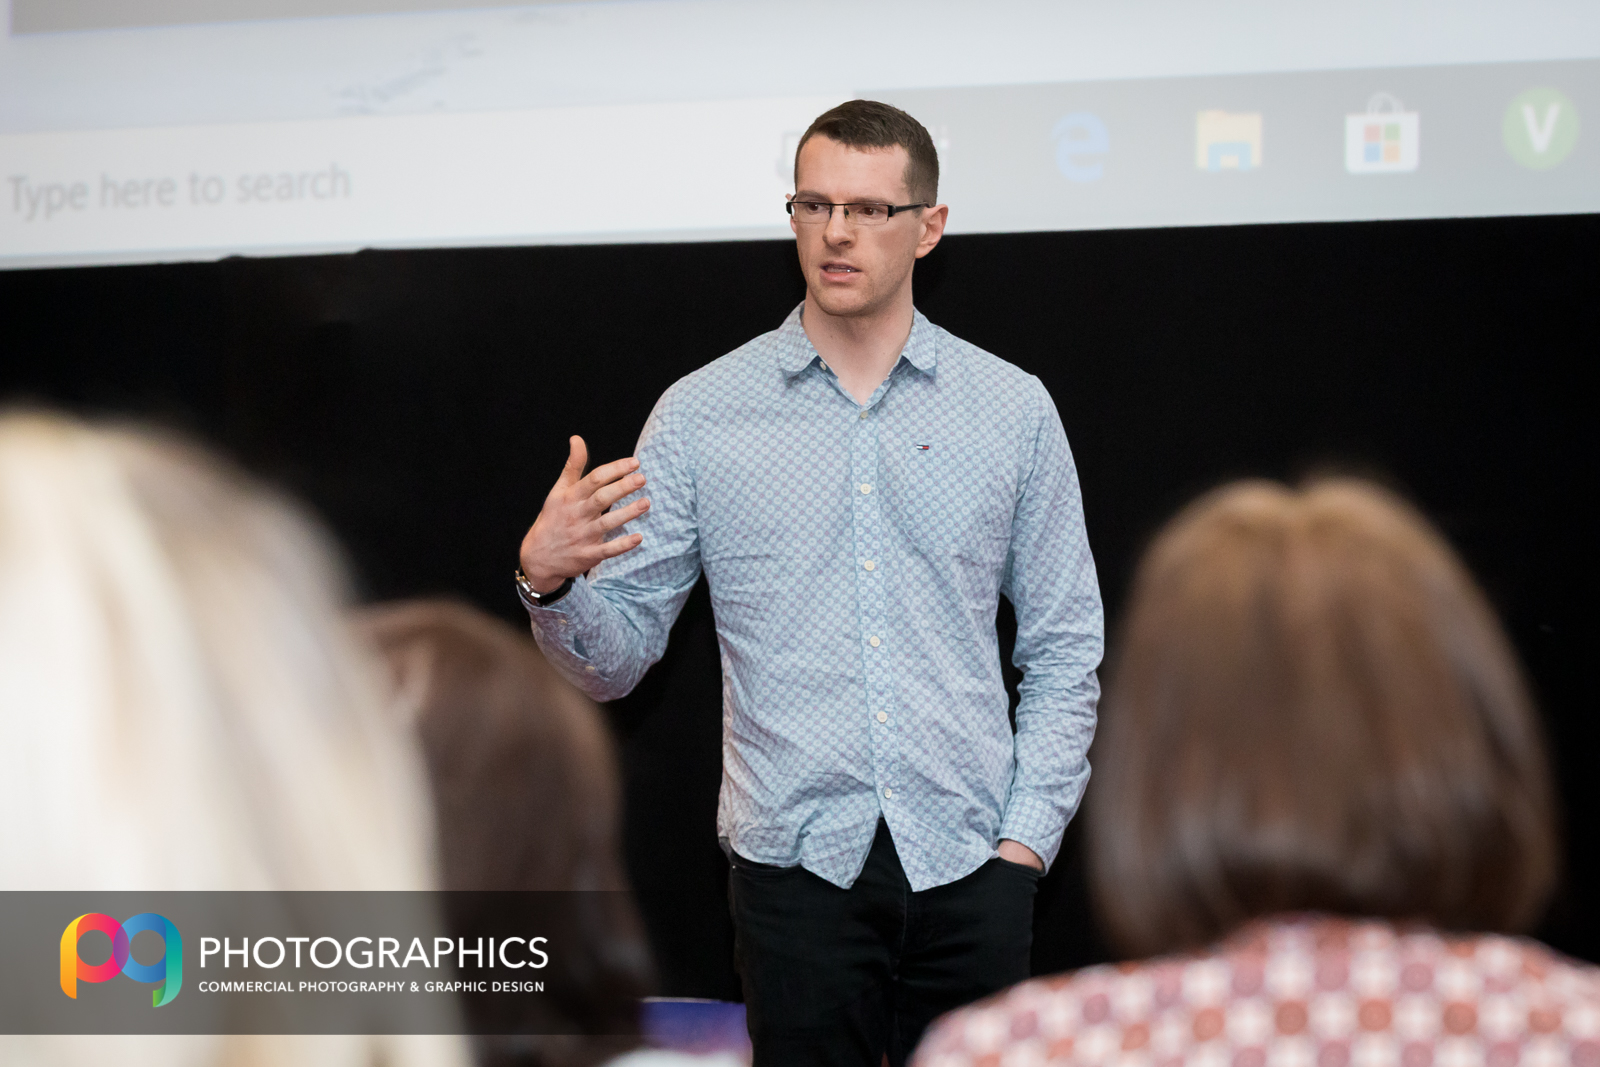 event-PR-photography-edinburgh-glasgow-scotland-10.jpg